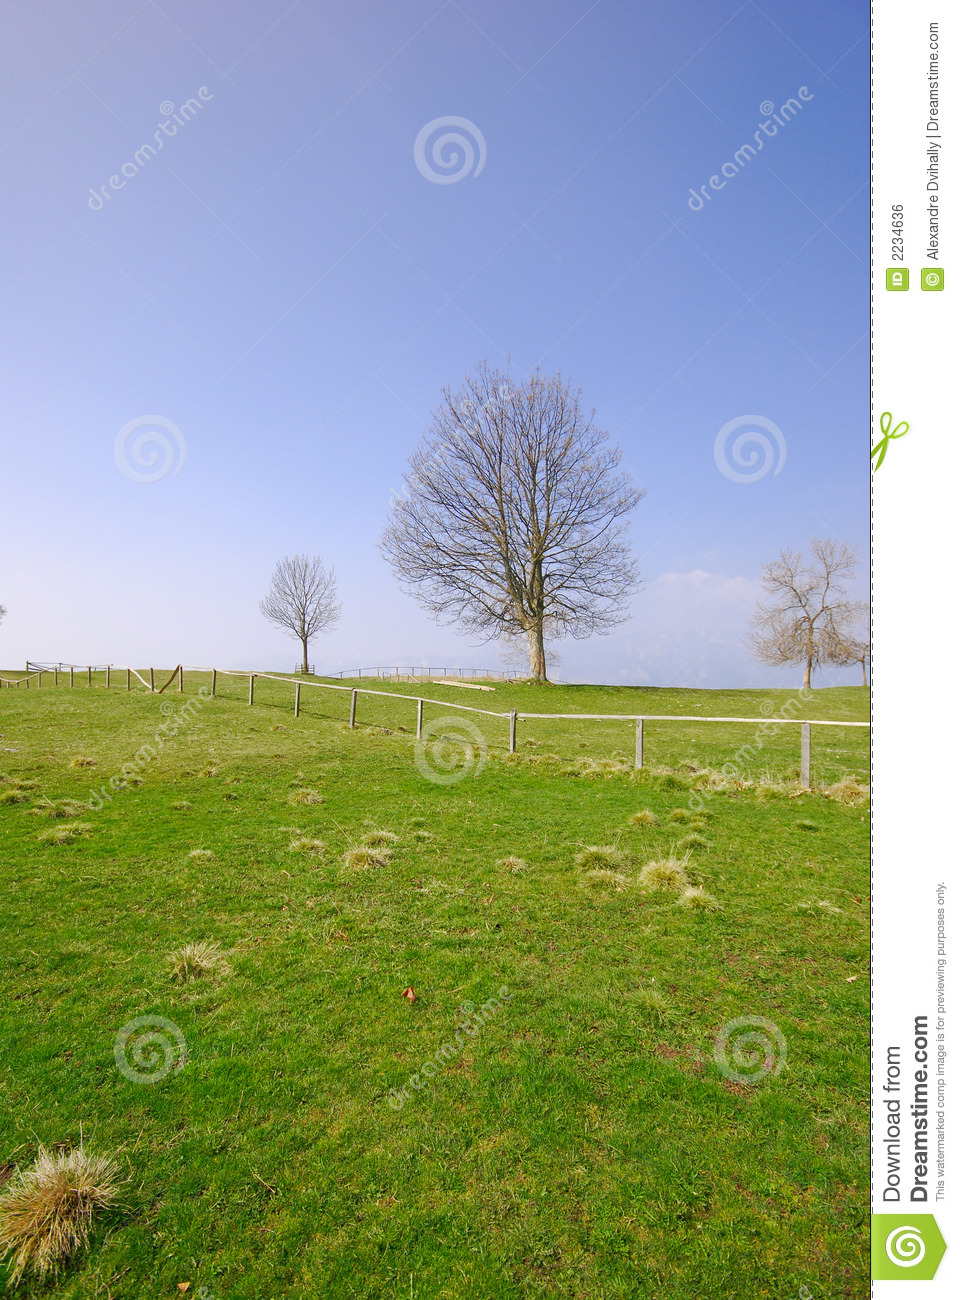 Green Grass And Tree Blue Sky Stock Photo - Image of green ...